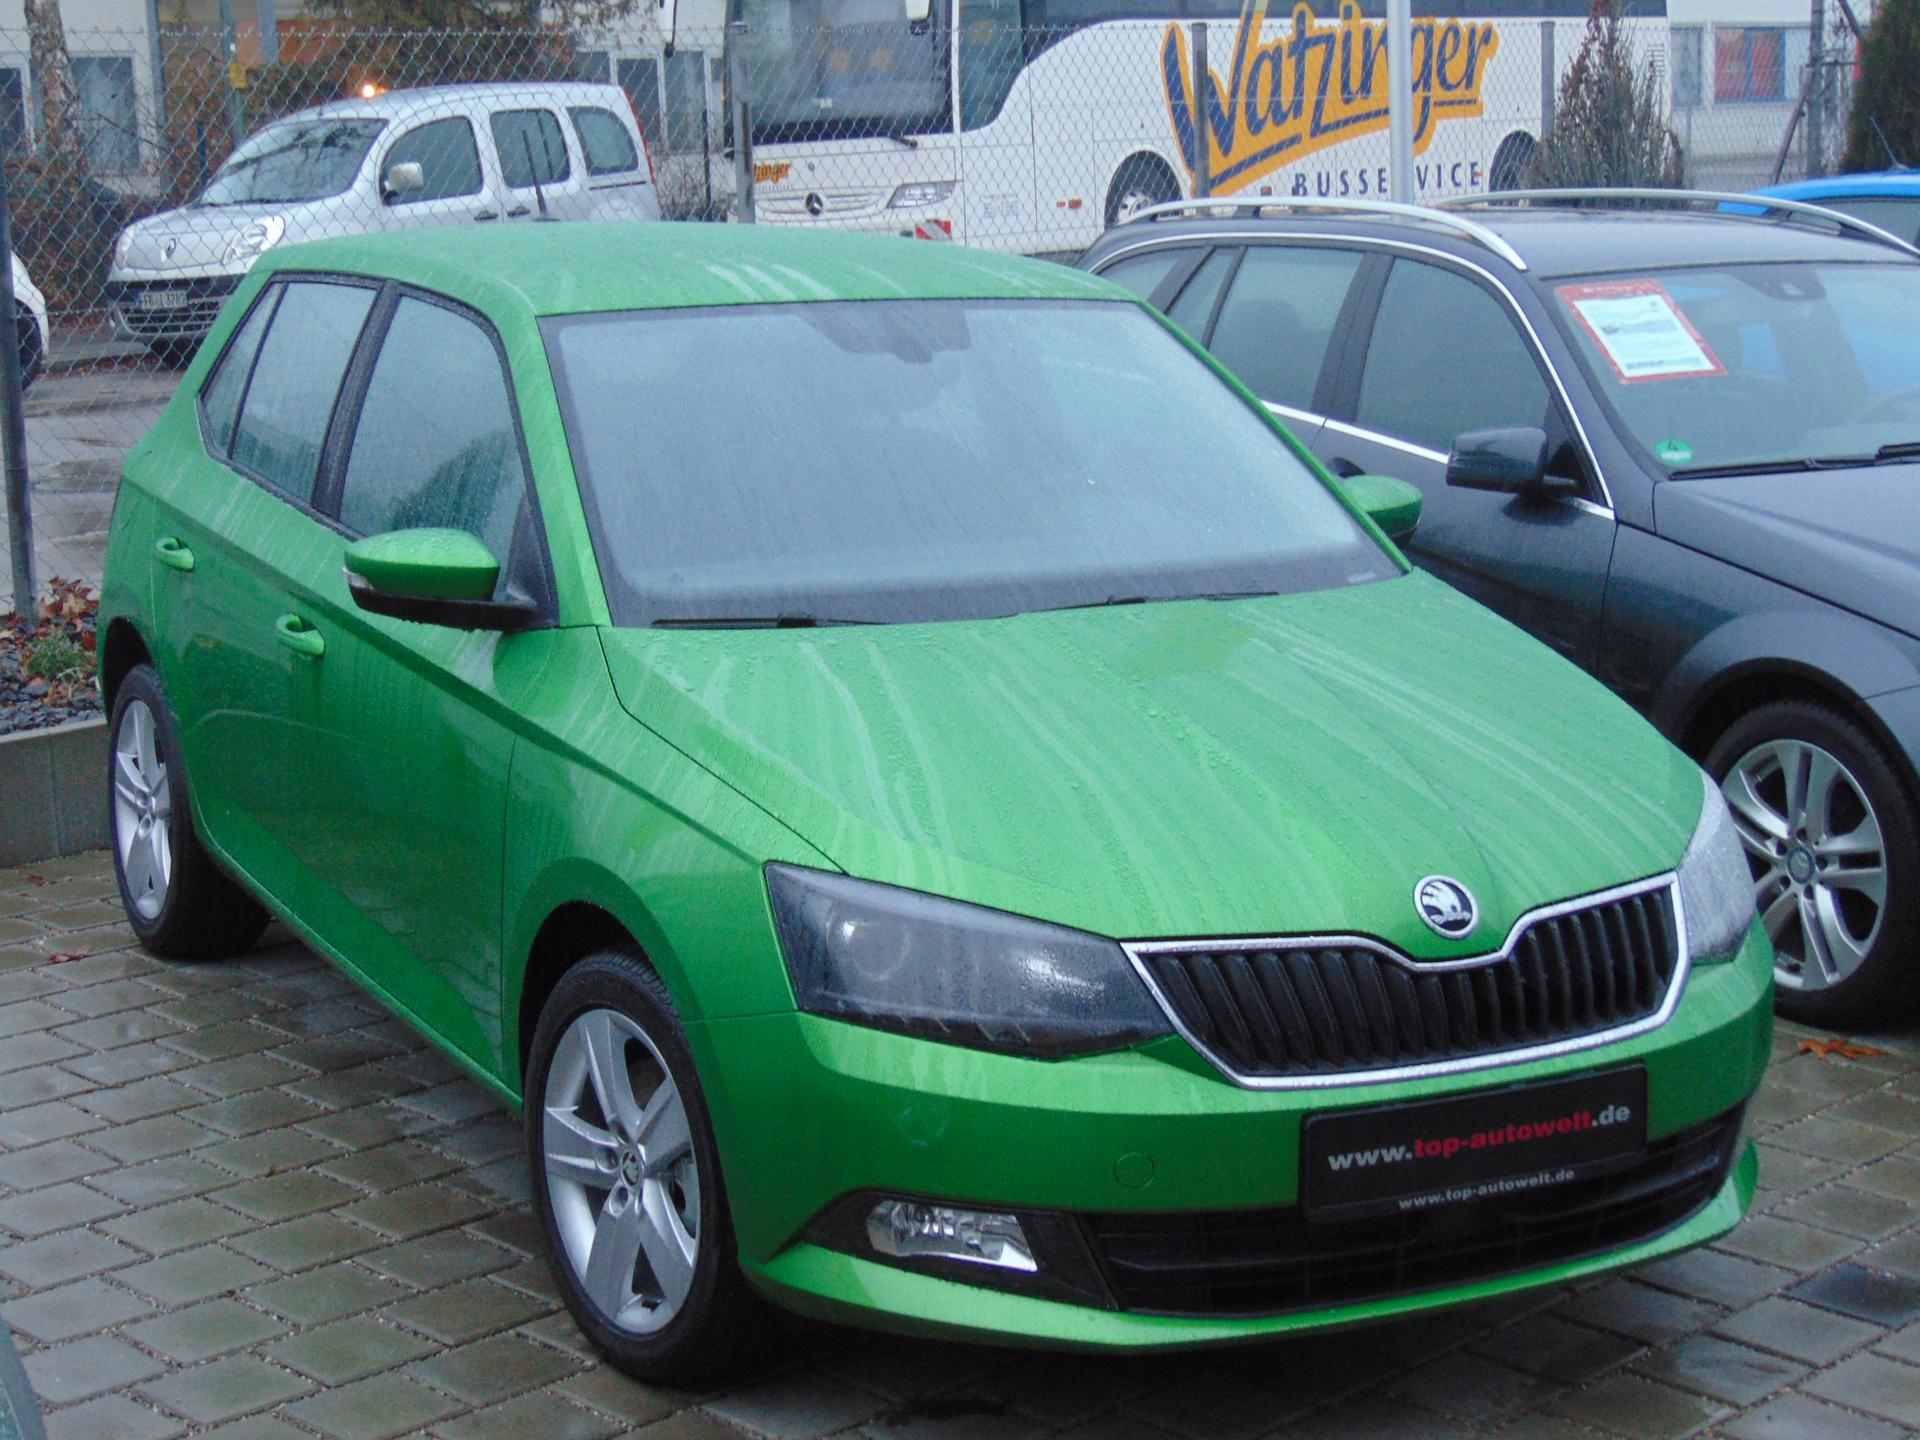 skoda fabia active 1 0 mpi 60 ps 5 j garantie radio. Black Bedroom Furniture Sets. Home Design Ideas